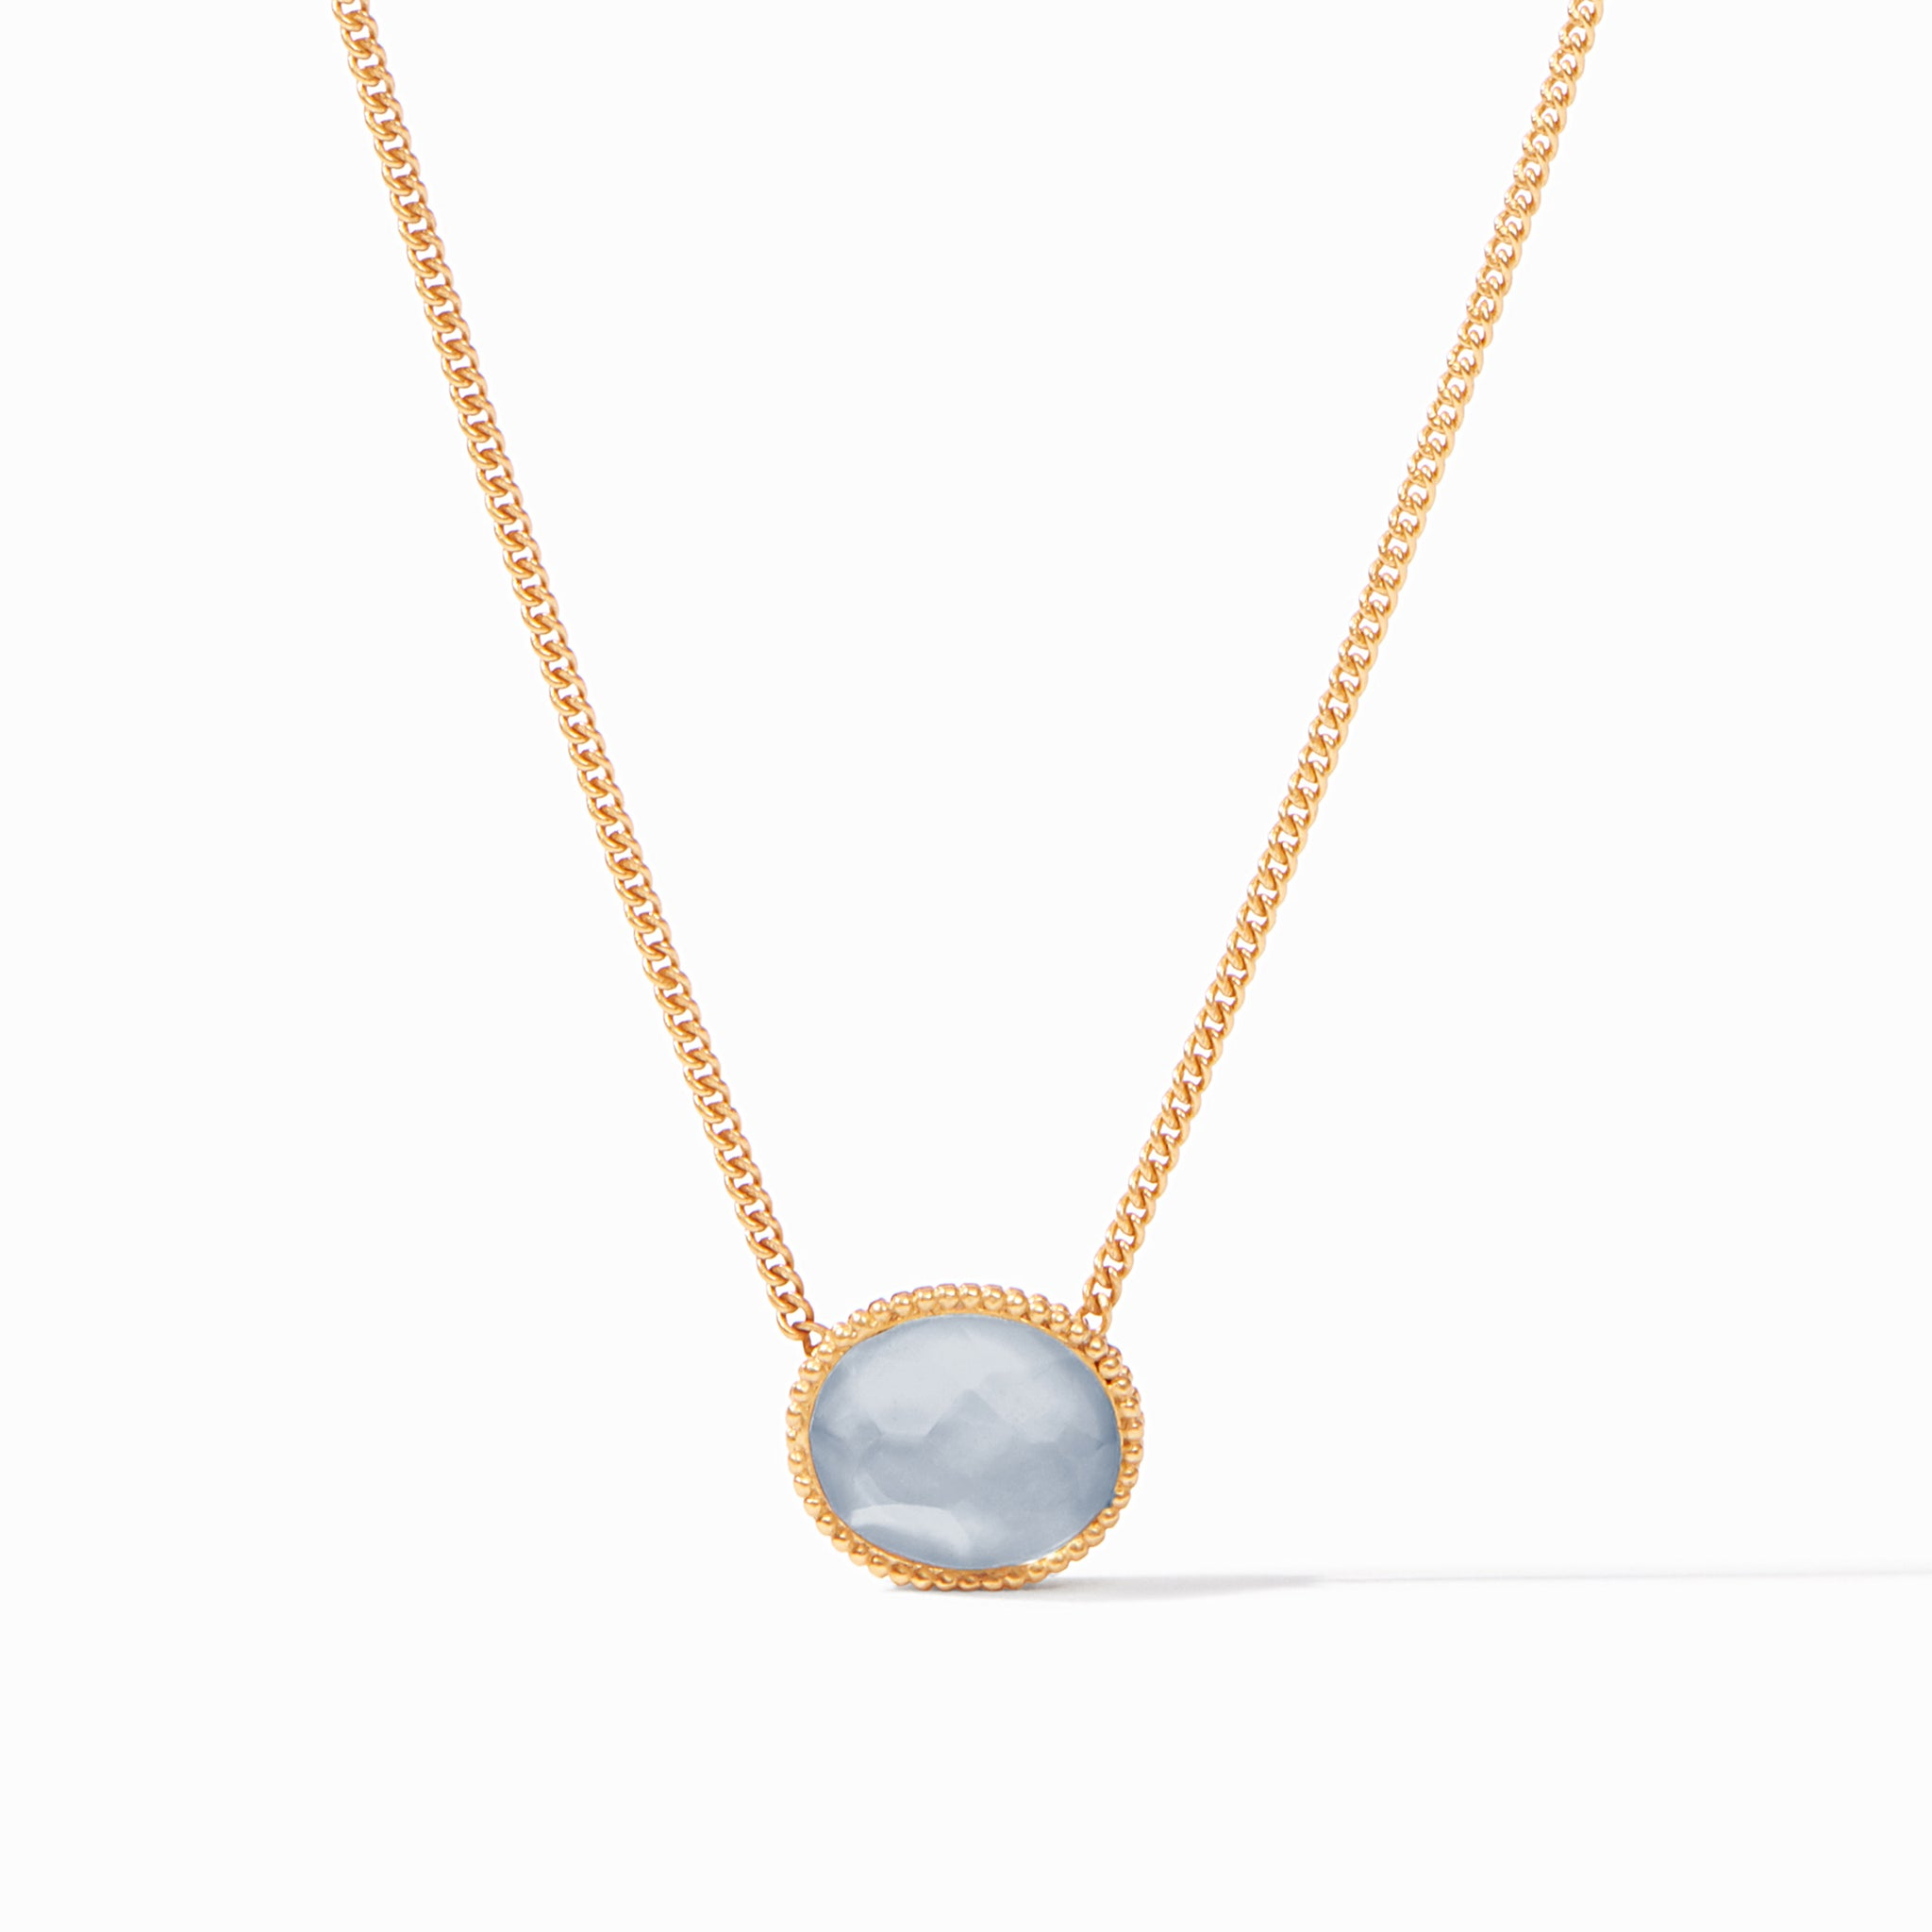 Iridescent Chalcedony Blue, Back in Stock, gift guide 2020, the finer things, new in chalcedony blue, bridal